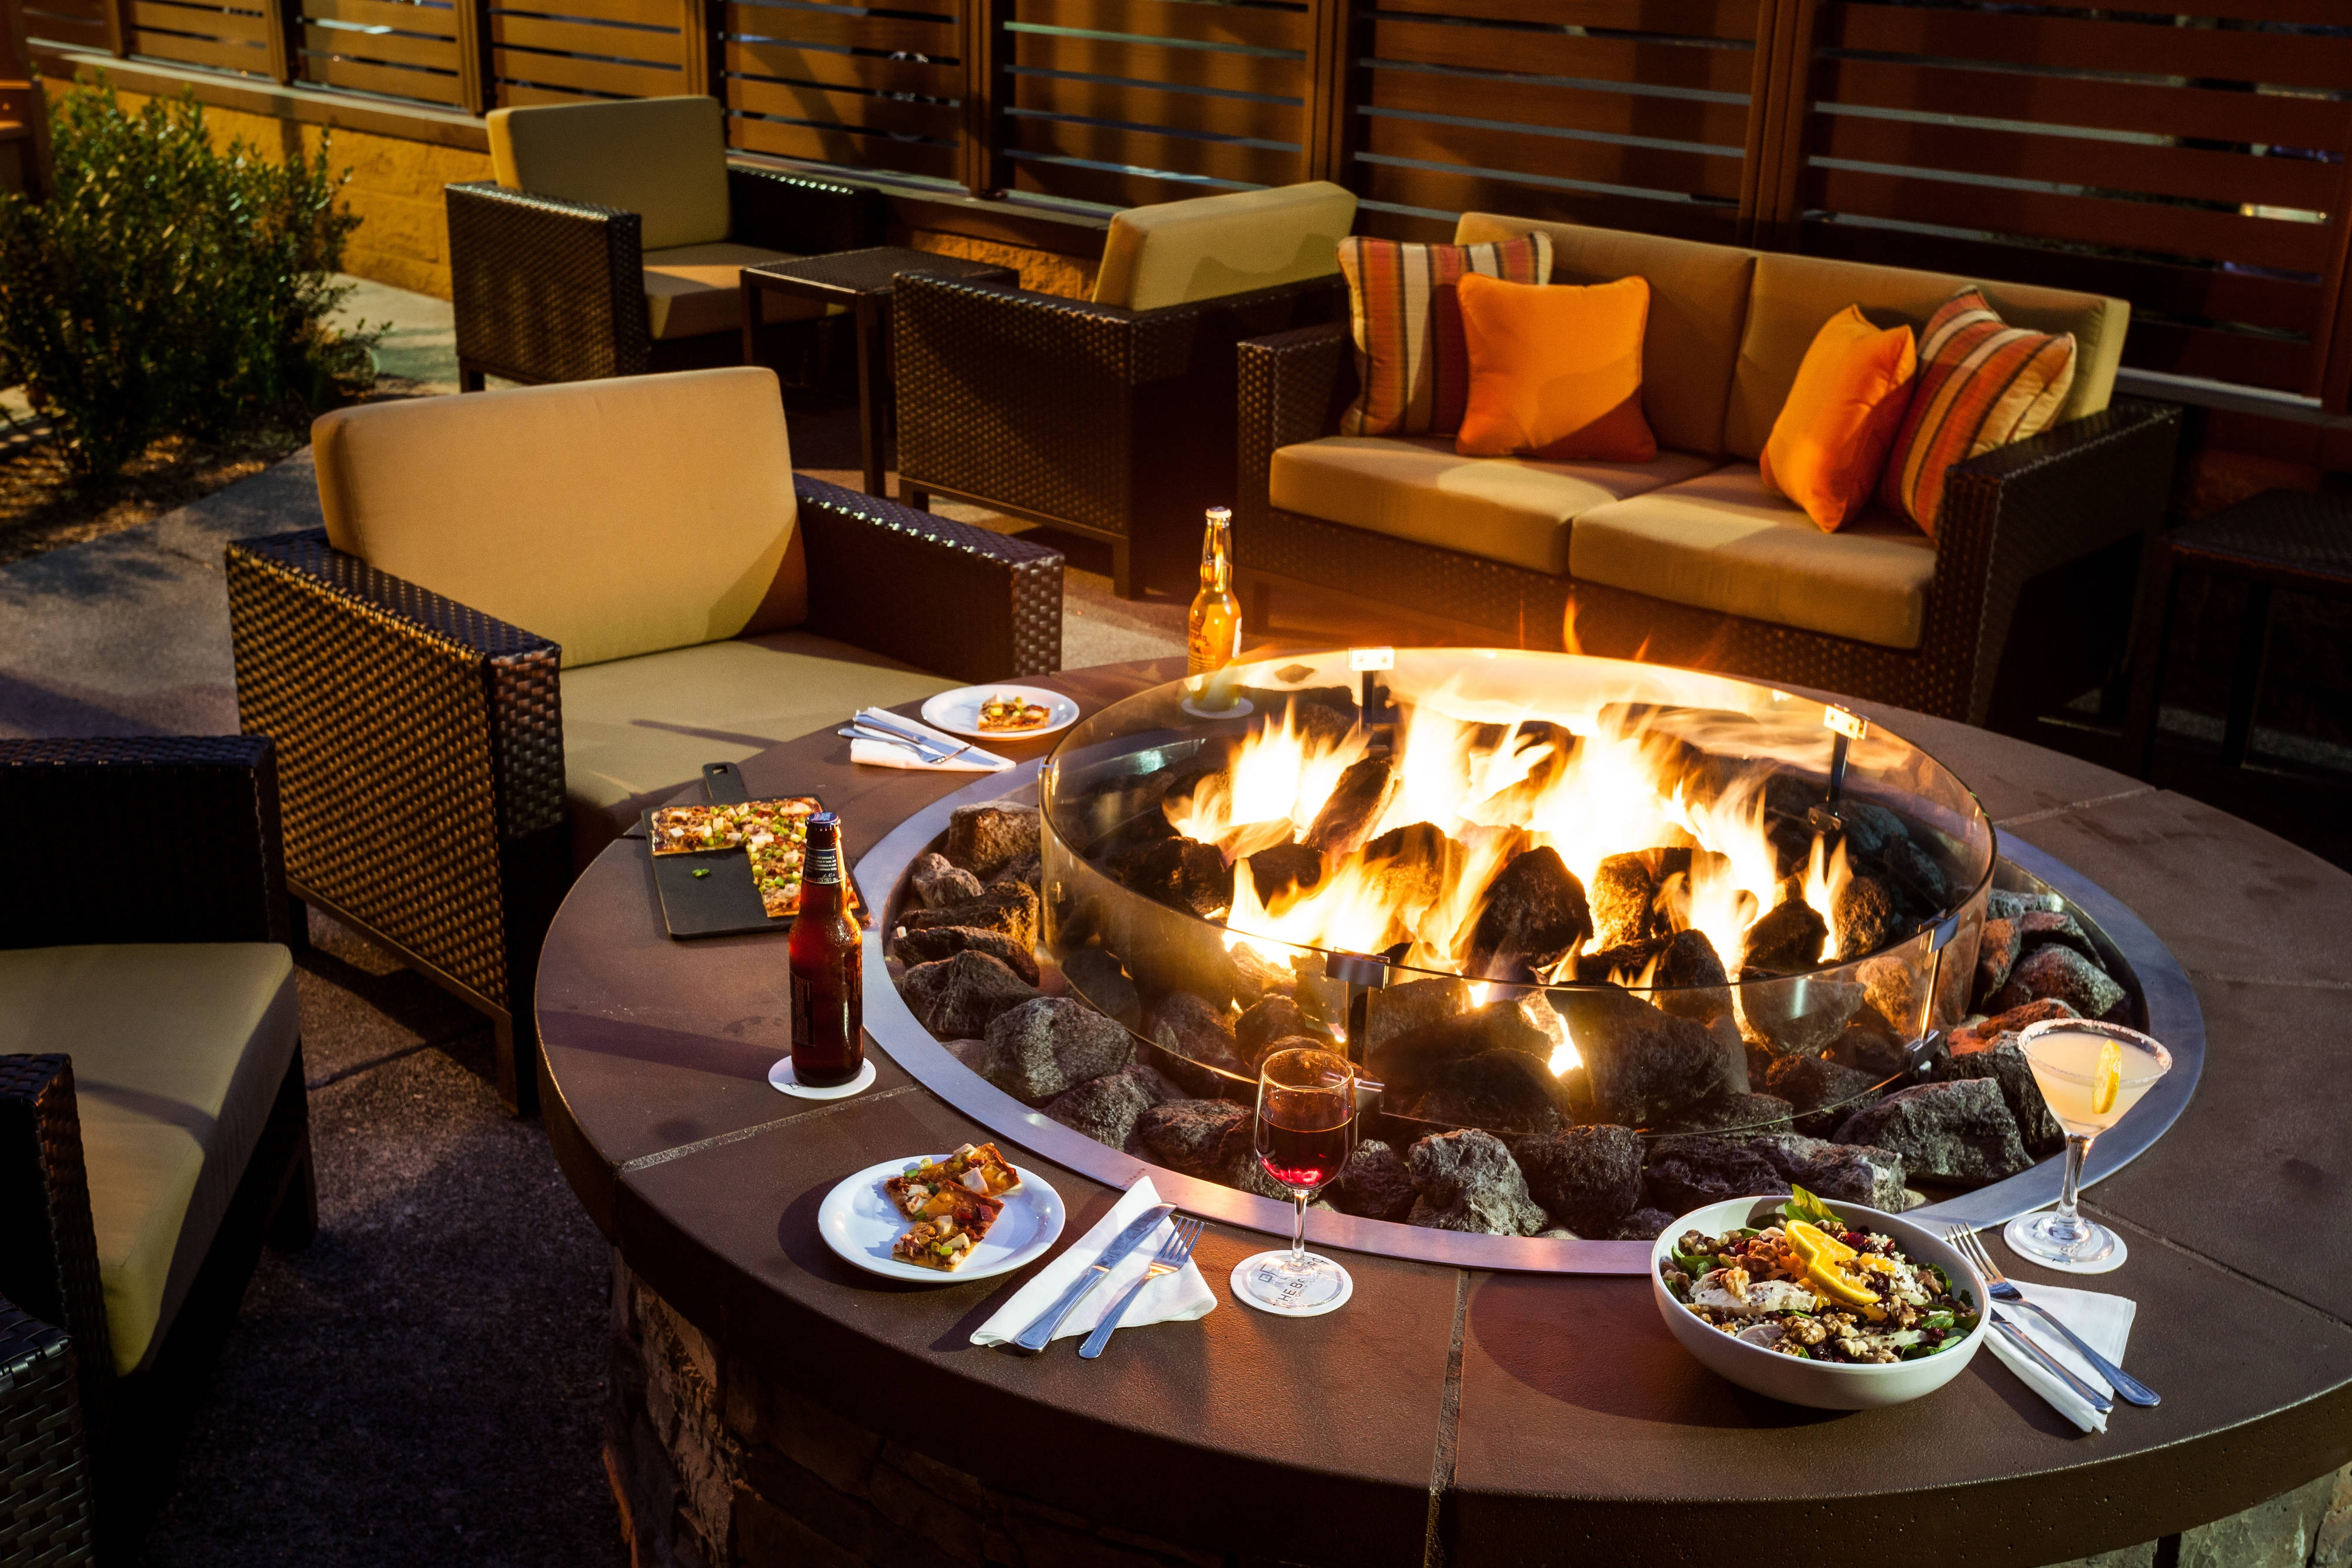 Courtyard by Marriott Santa Rosa Fire Pit